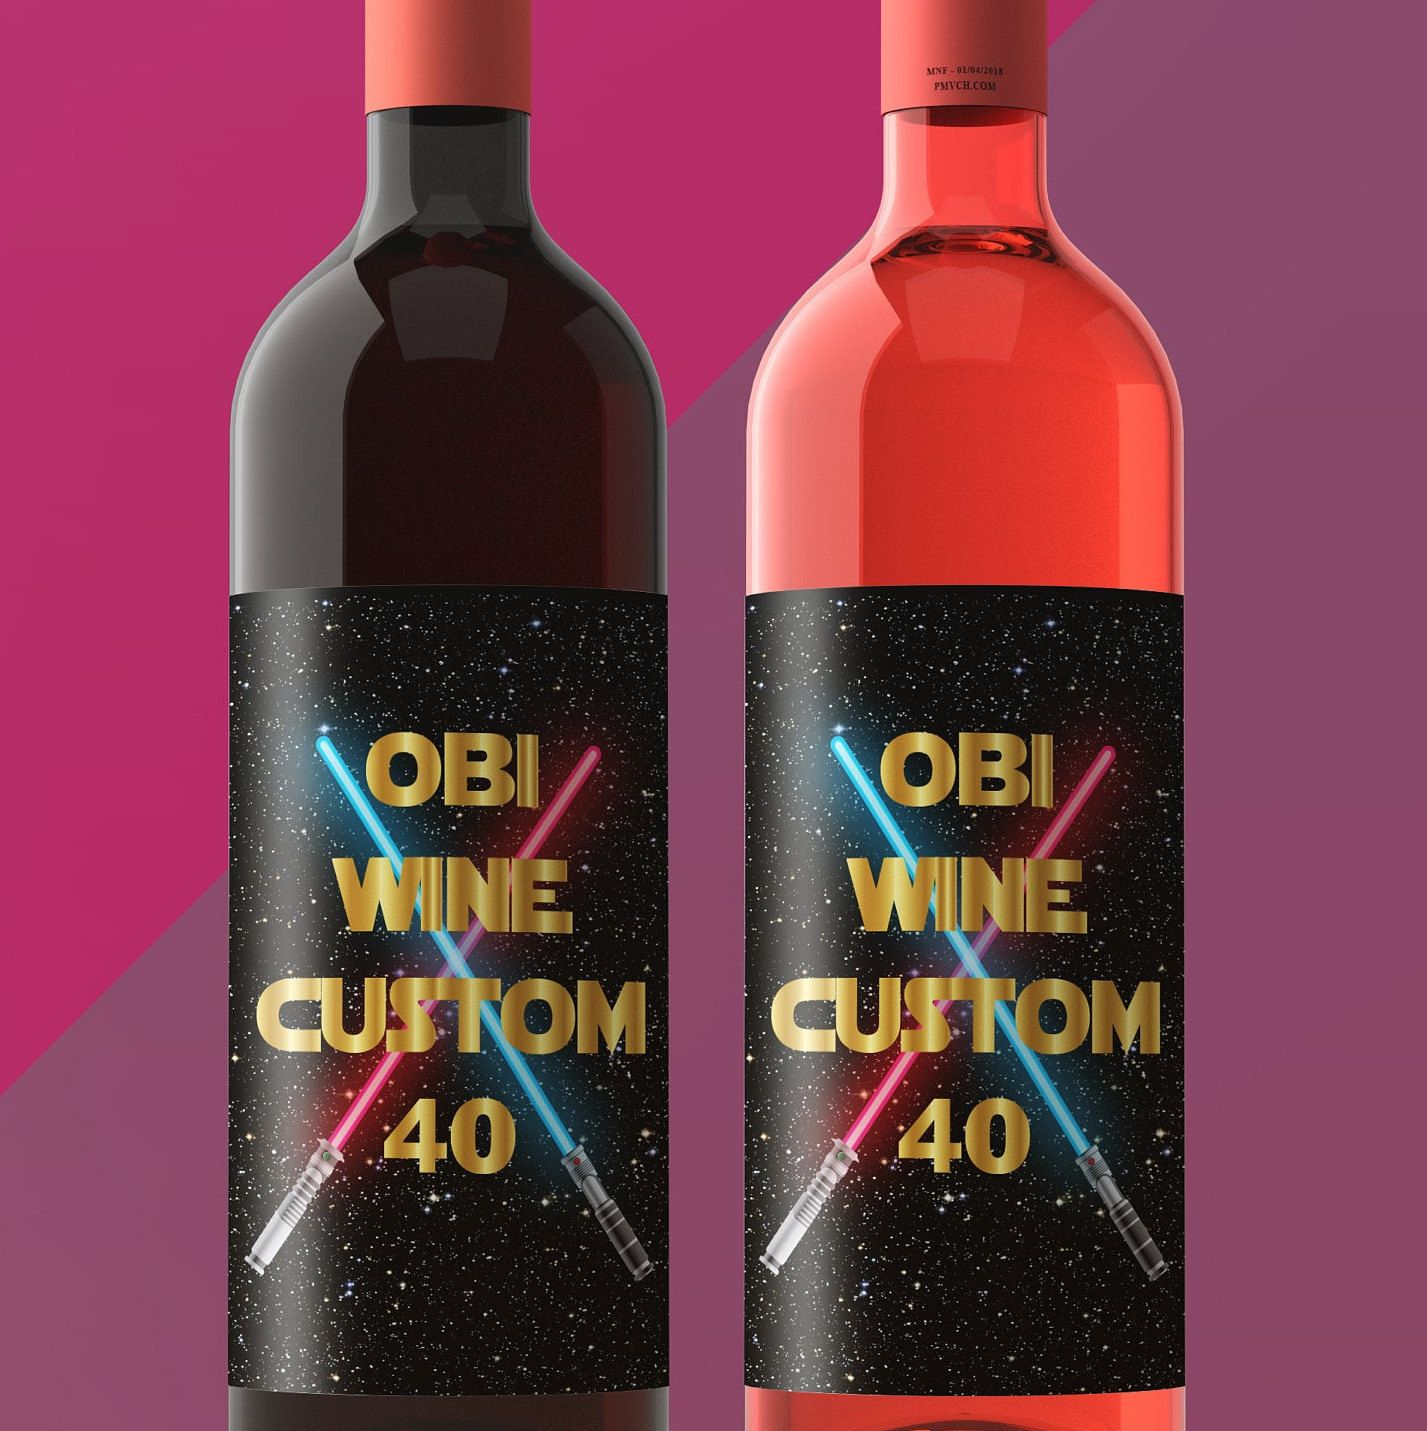 Star Wine Labels Obi Wine Custom Friends Labels Celebration Etsy In 2020 Wine Wine Bottle Unicorn Coffee Mug